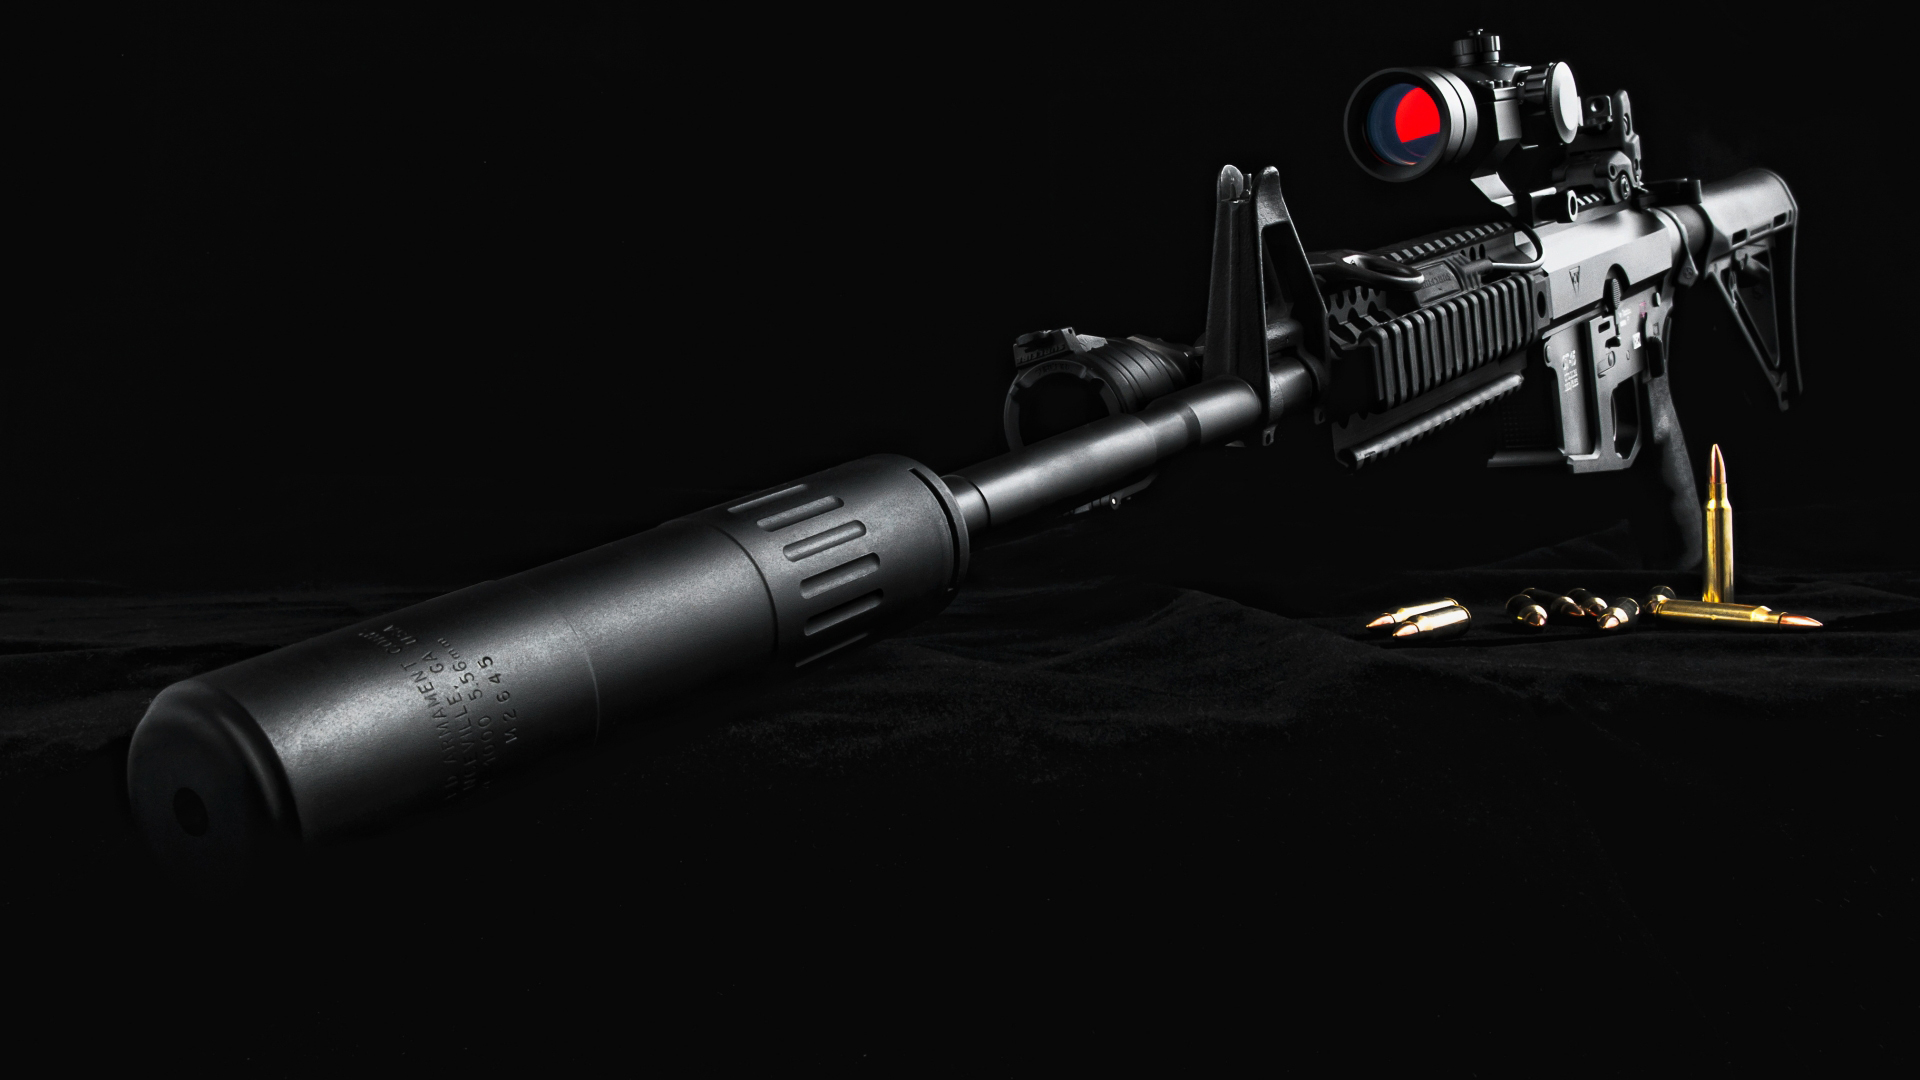 44 Sniper Rifle HD Wallpapers Backgrounds 1920x1080